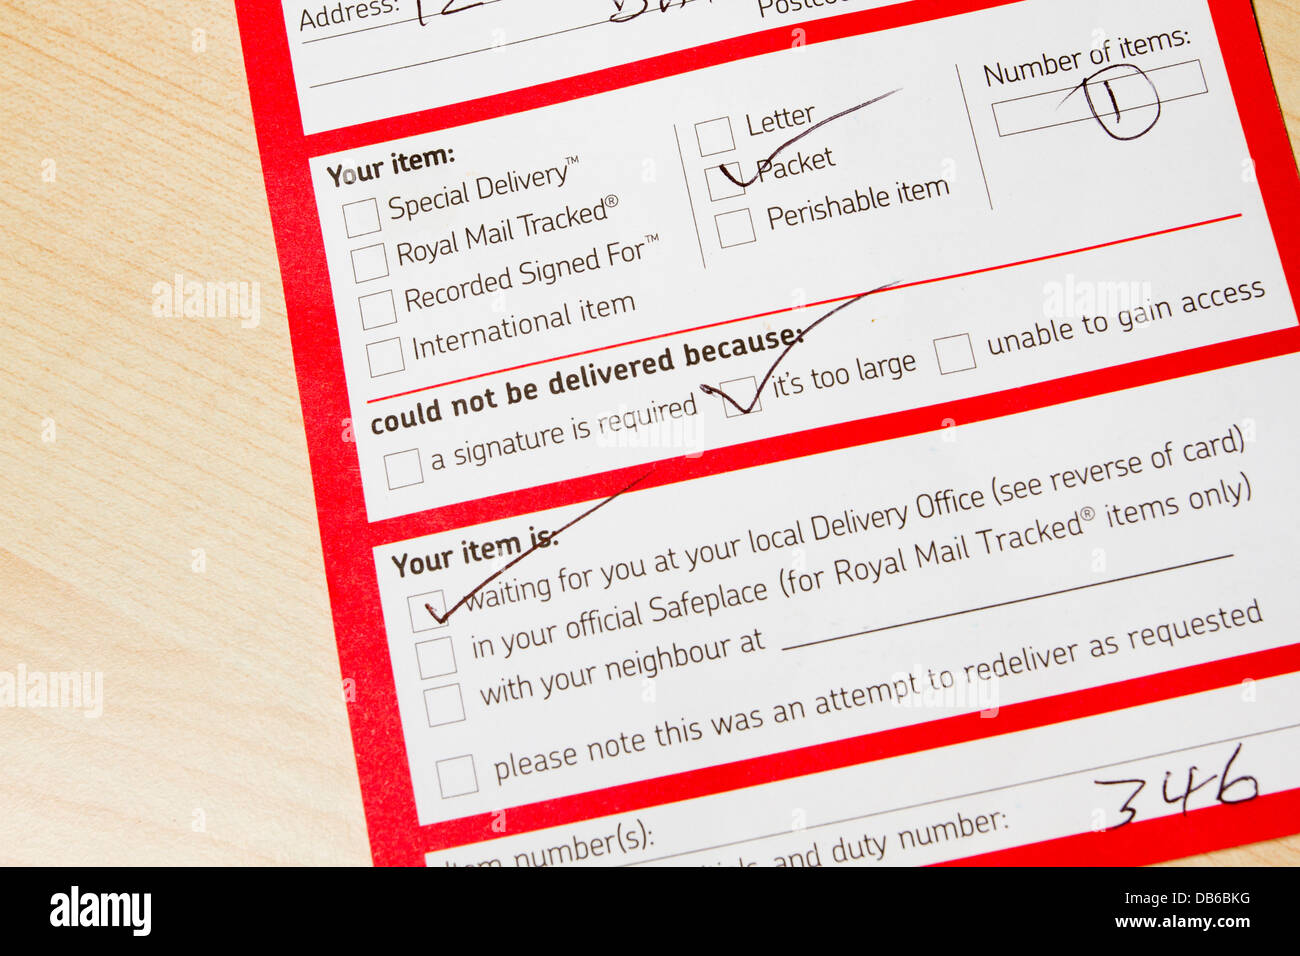 Royal Mail, while you were out missed delivery card/note ...